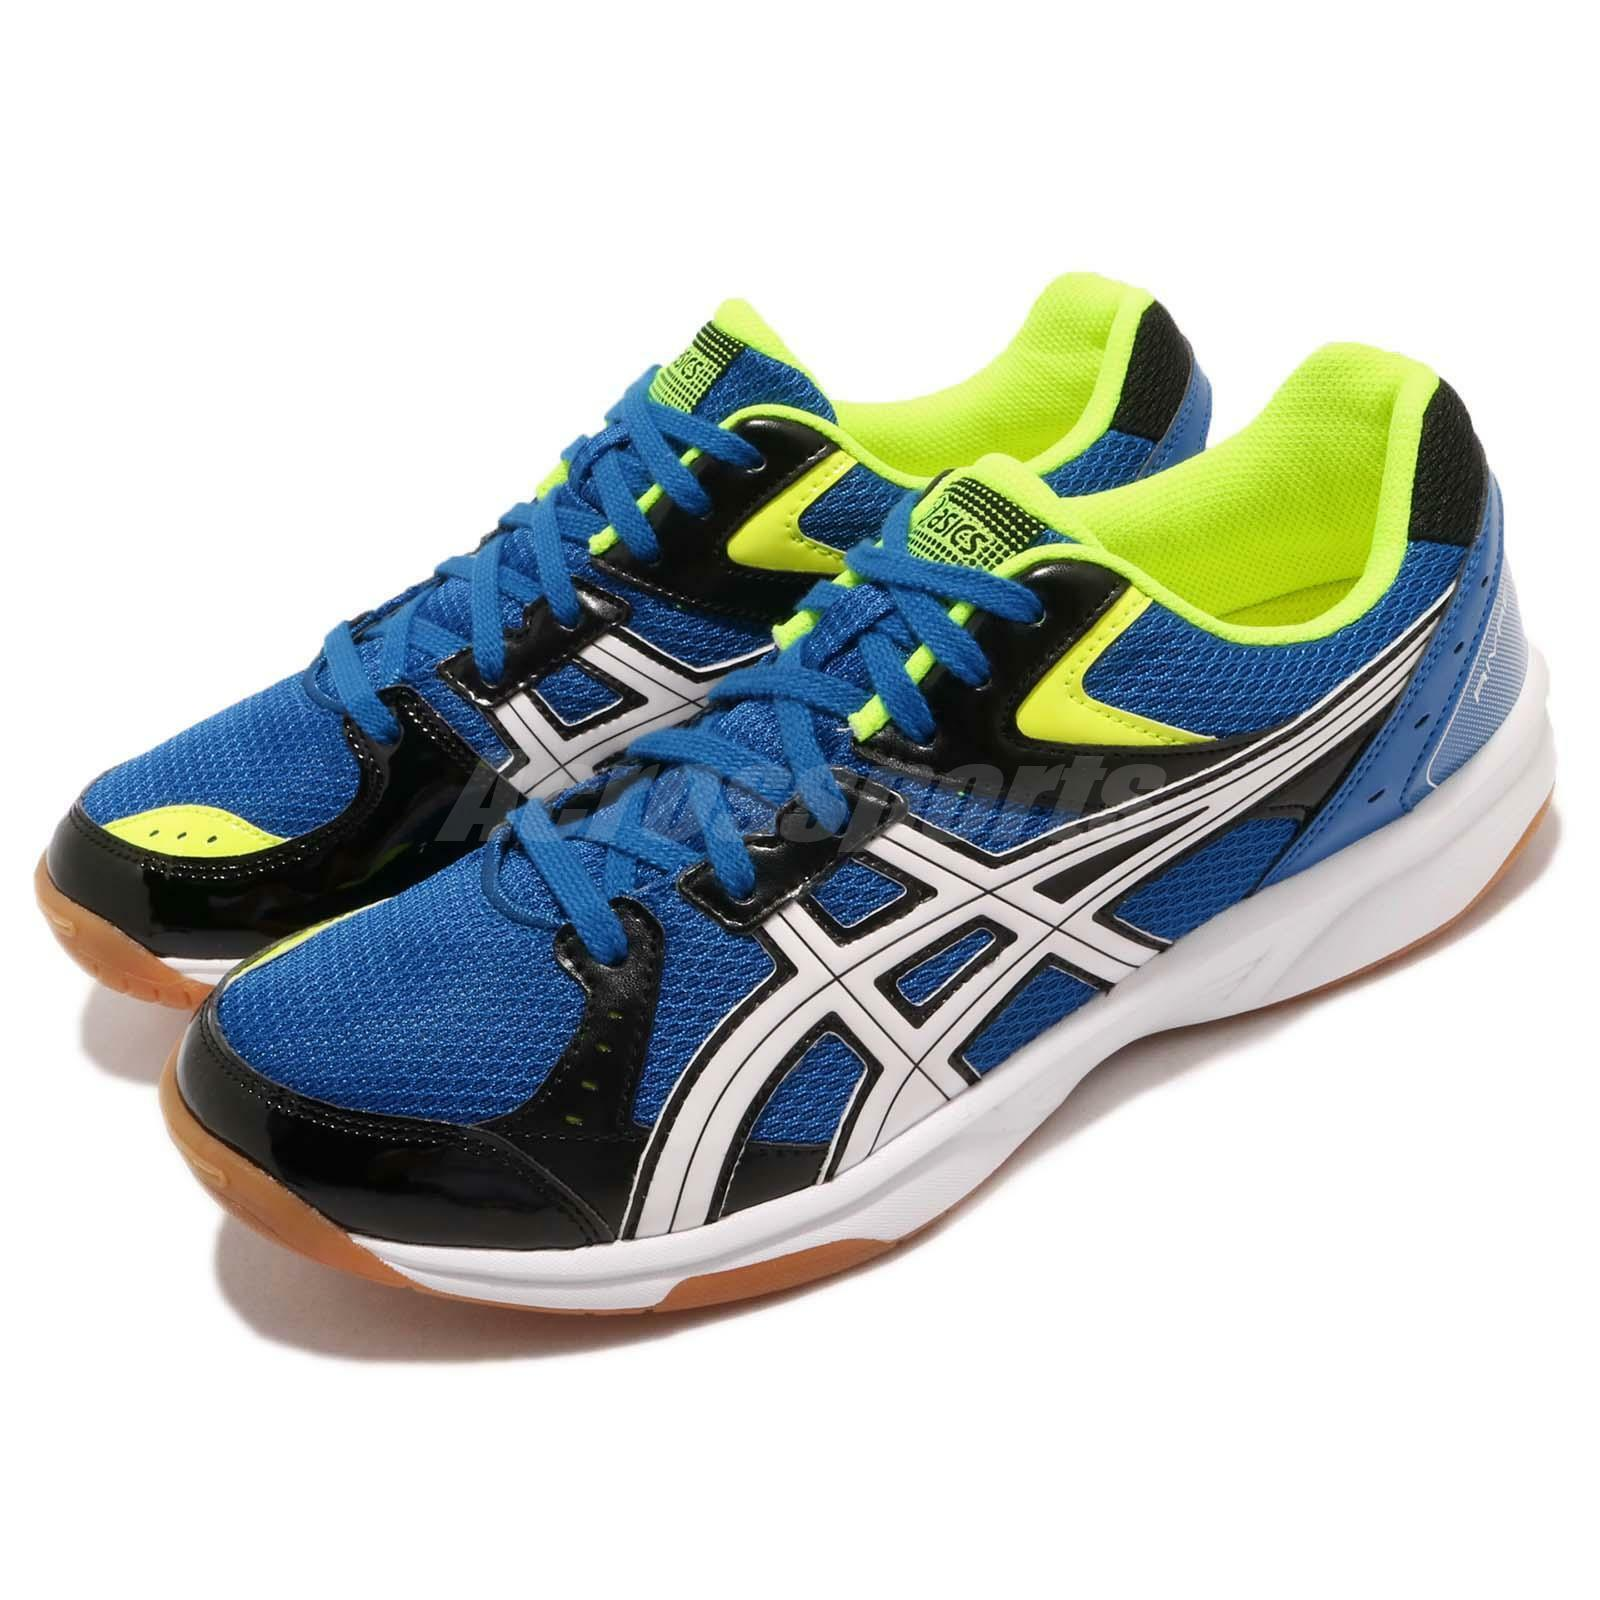 Asics Rivre CS azul blanco Gum Mens Volleyball Badminton zapatos TVRA03-400